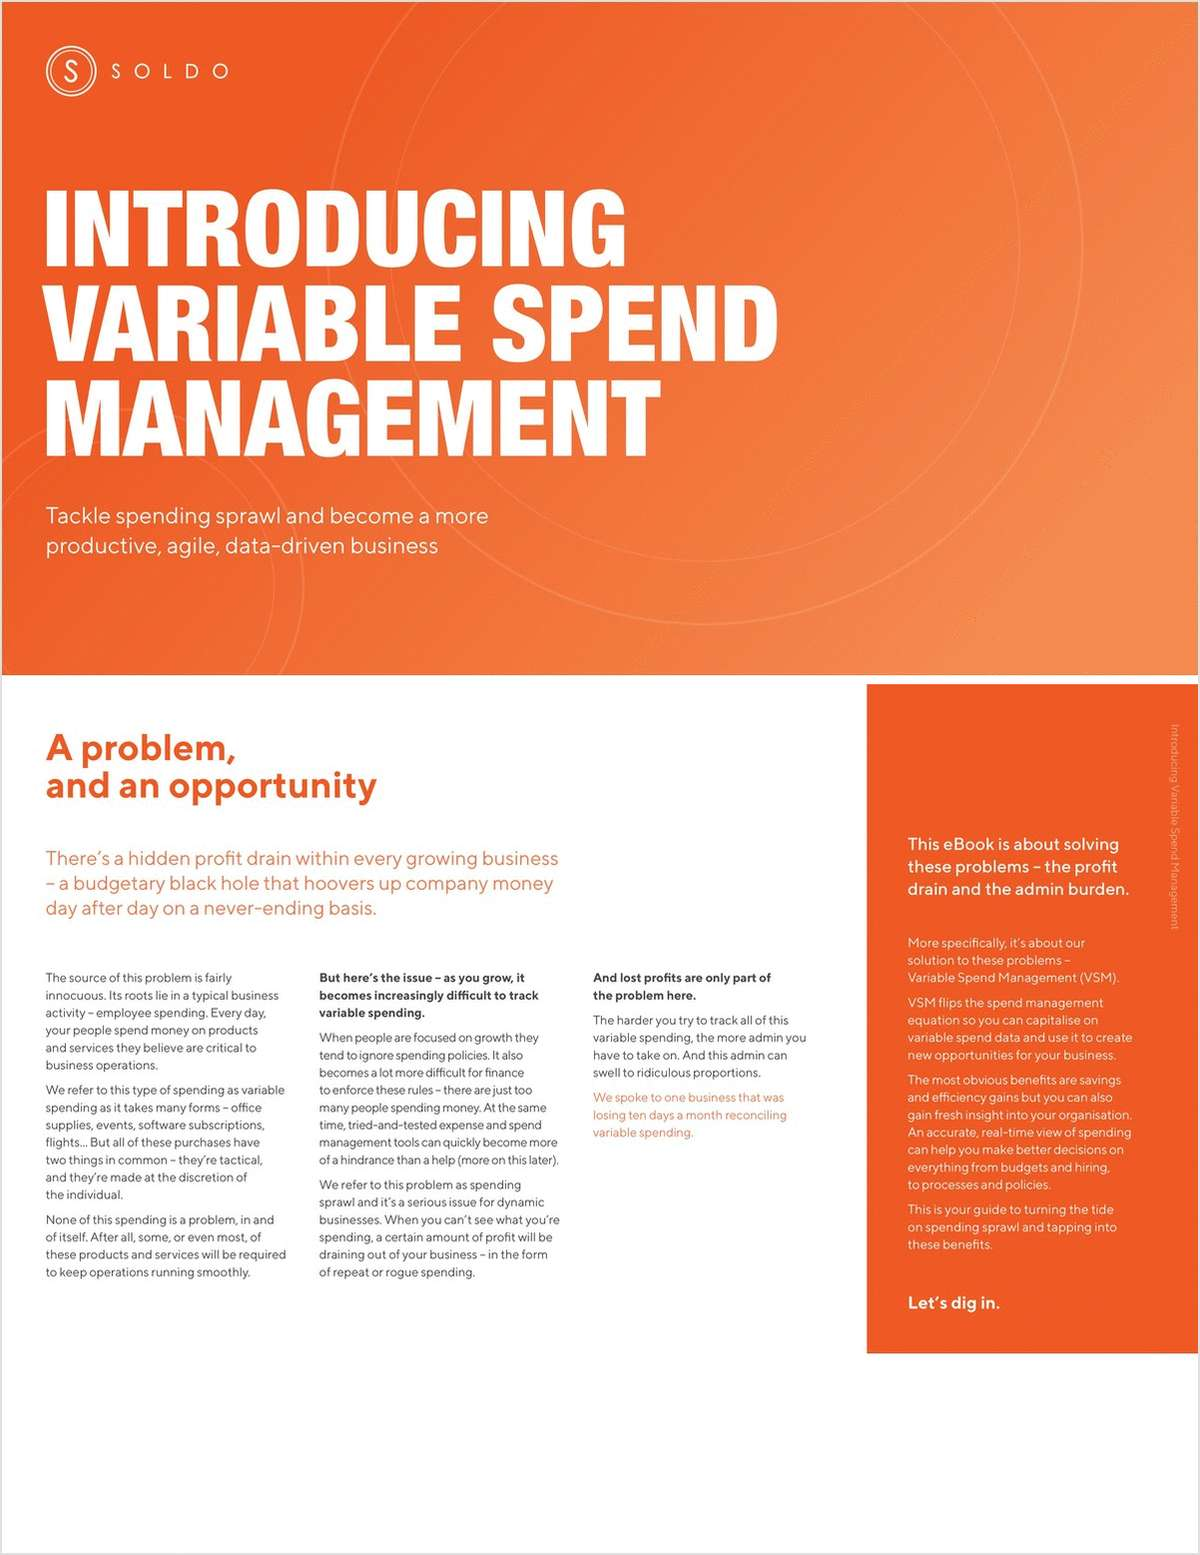 Introducing Variable Spend Management